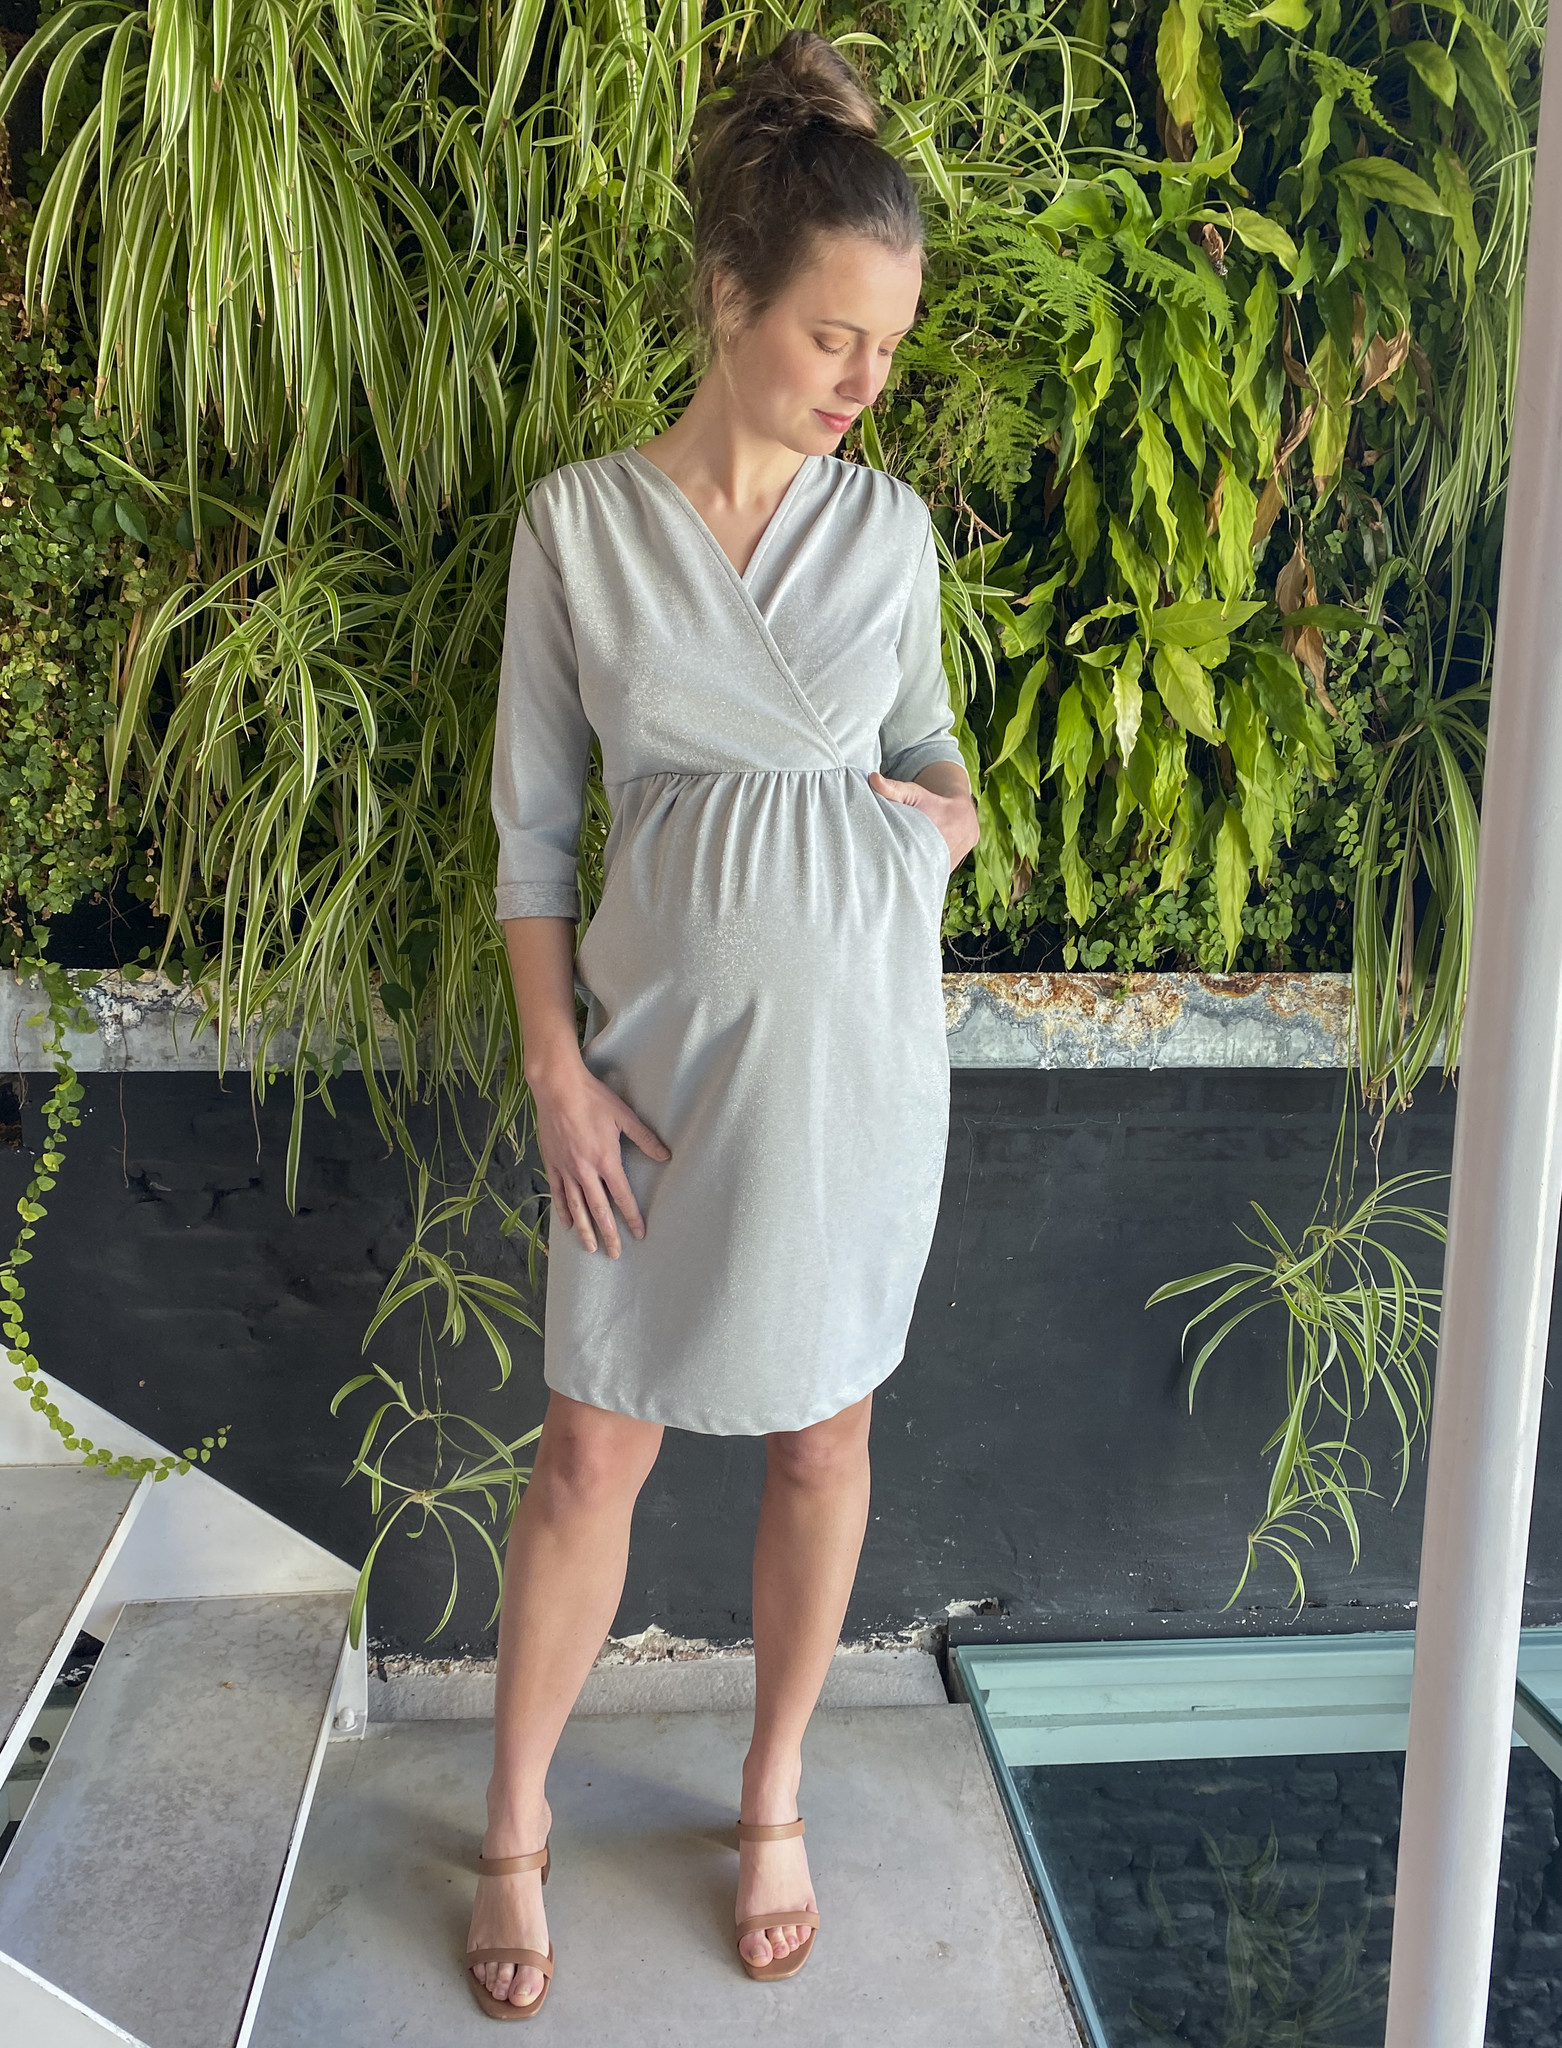 Comfy Dress 7/8 Sleeves Silver Sparkle-1